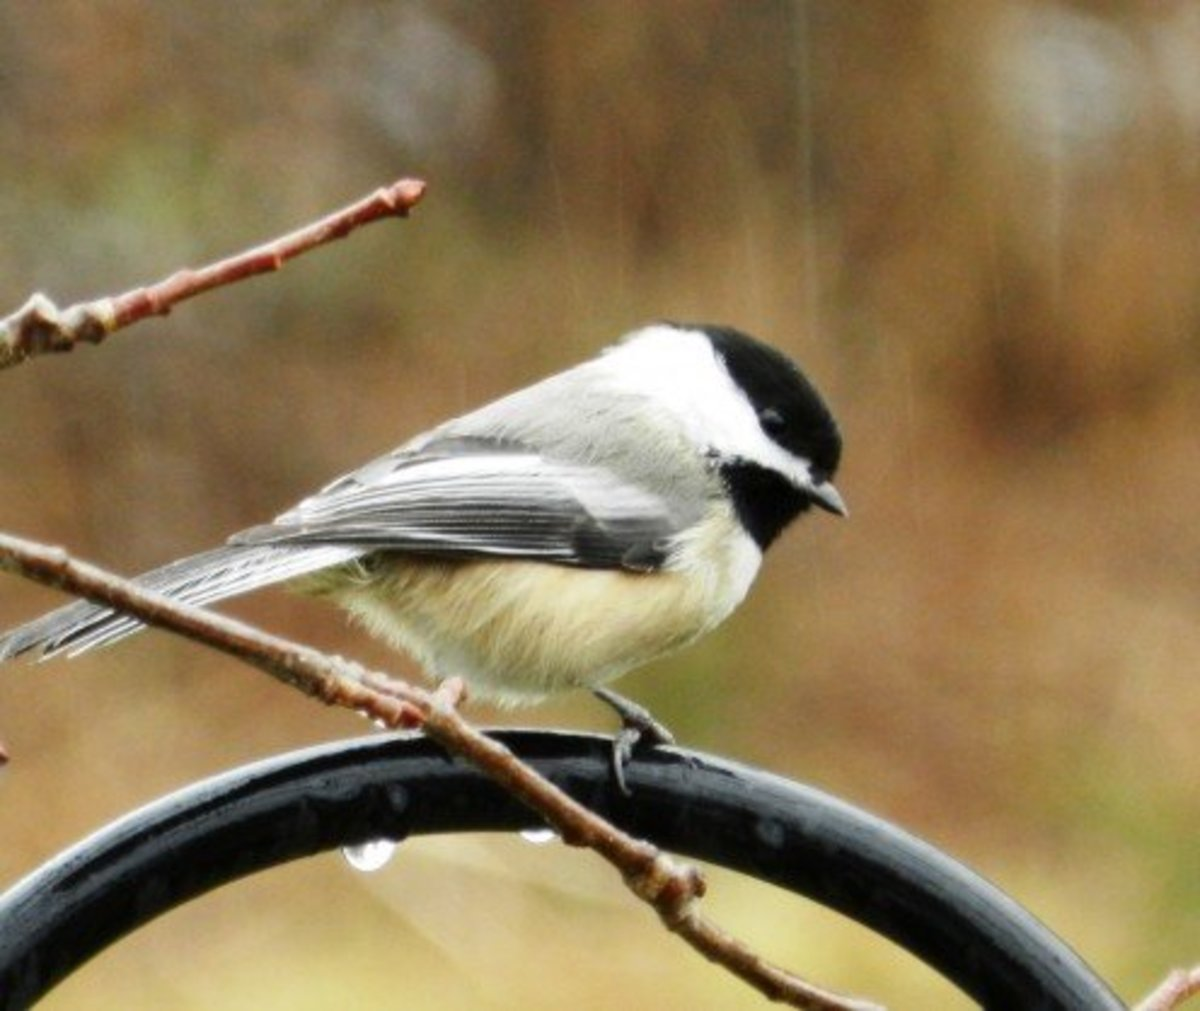 Rain or shine, the Chickadee is a tenacious little bird.